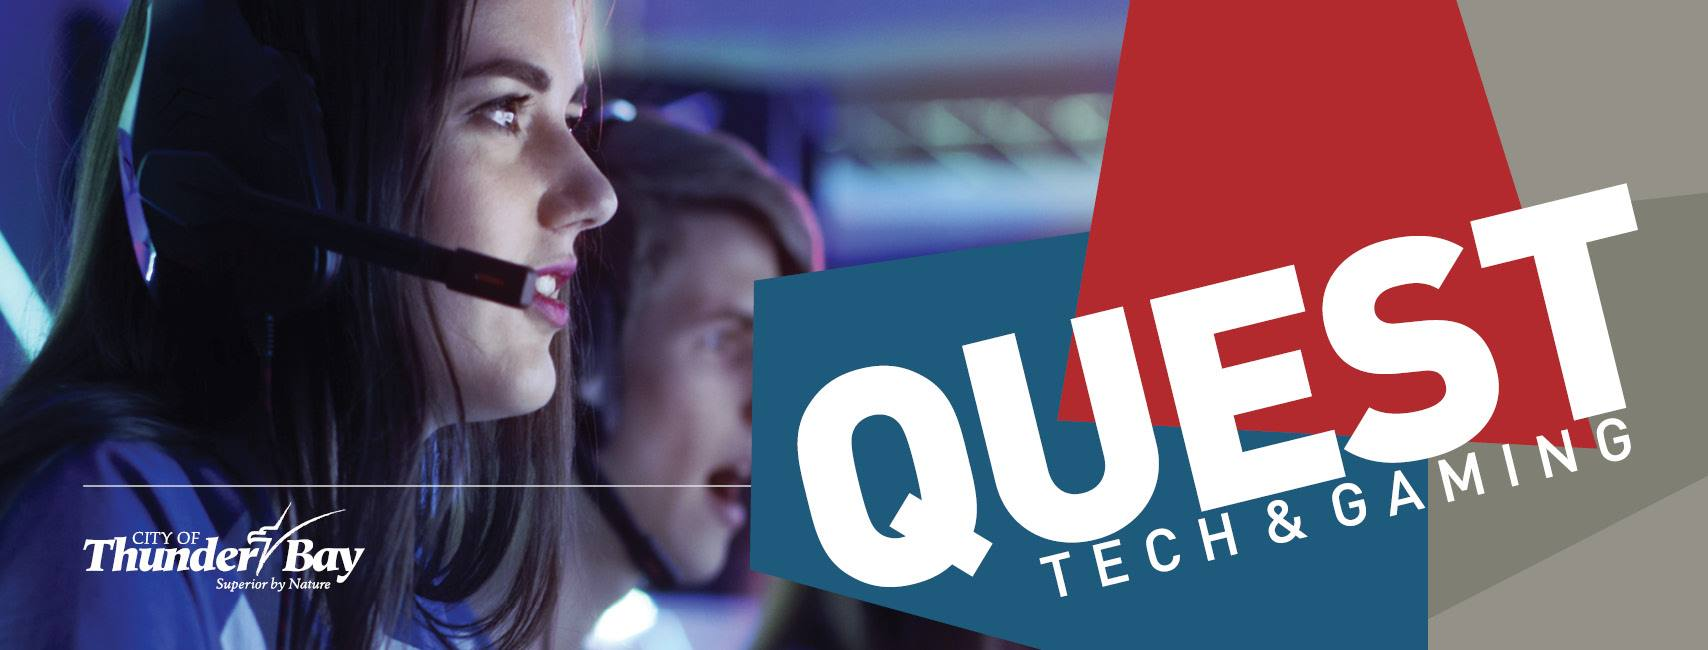 Quest Tech & Gaming event